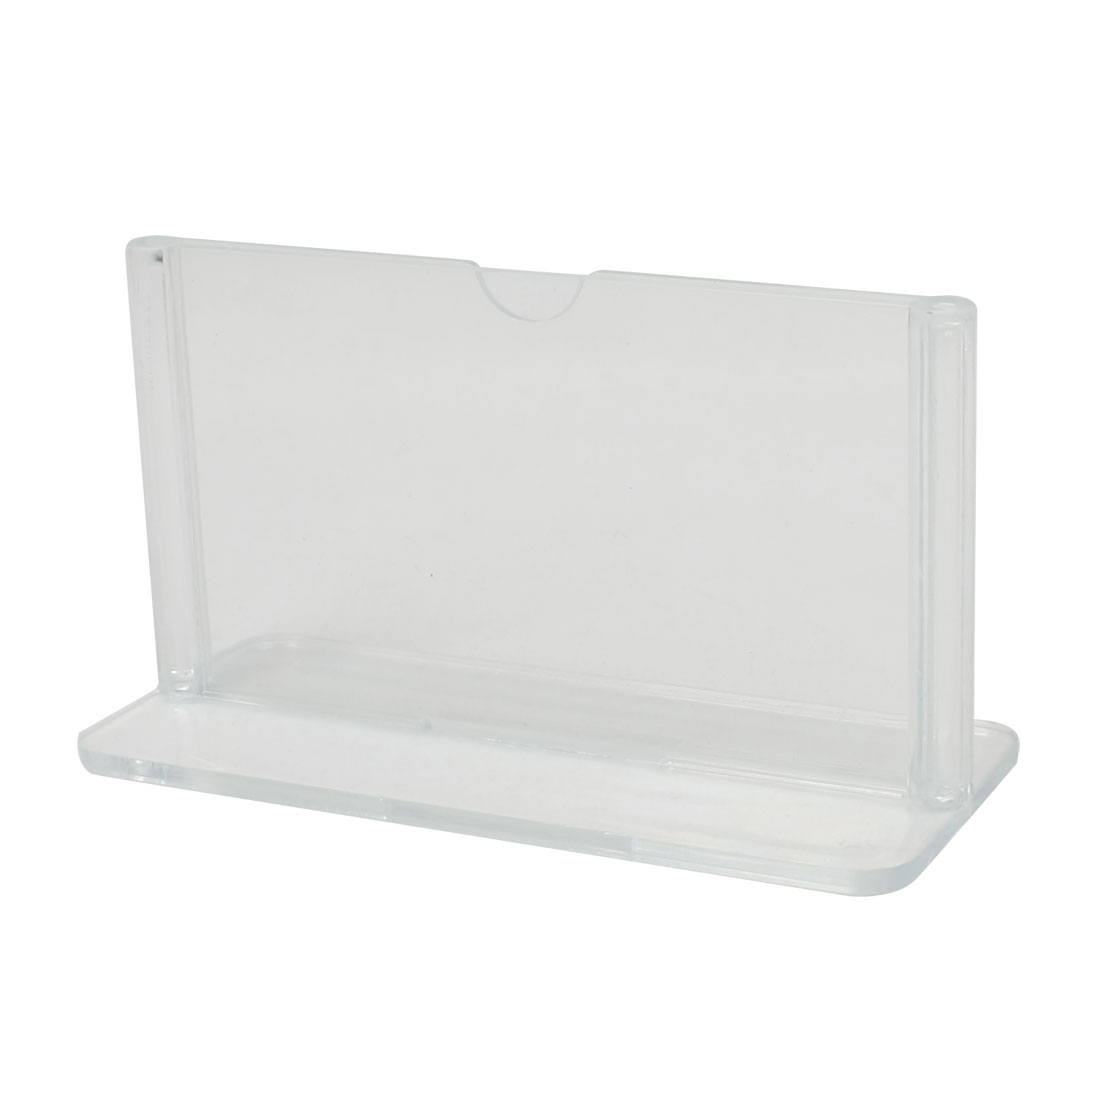 "Clear Plastic 3.5"" x 2.2"" Hotel Restaurant Menu Display Holder"